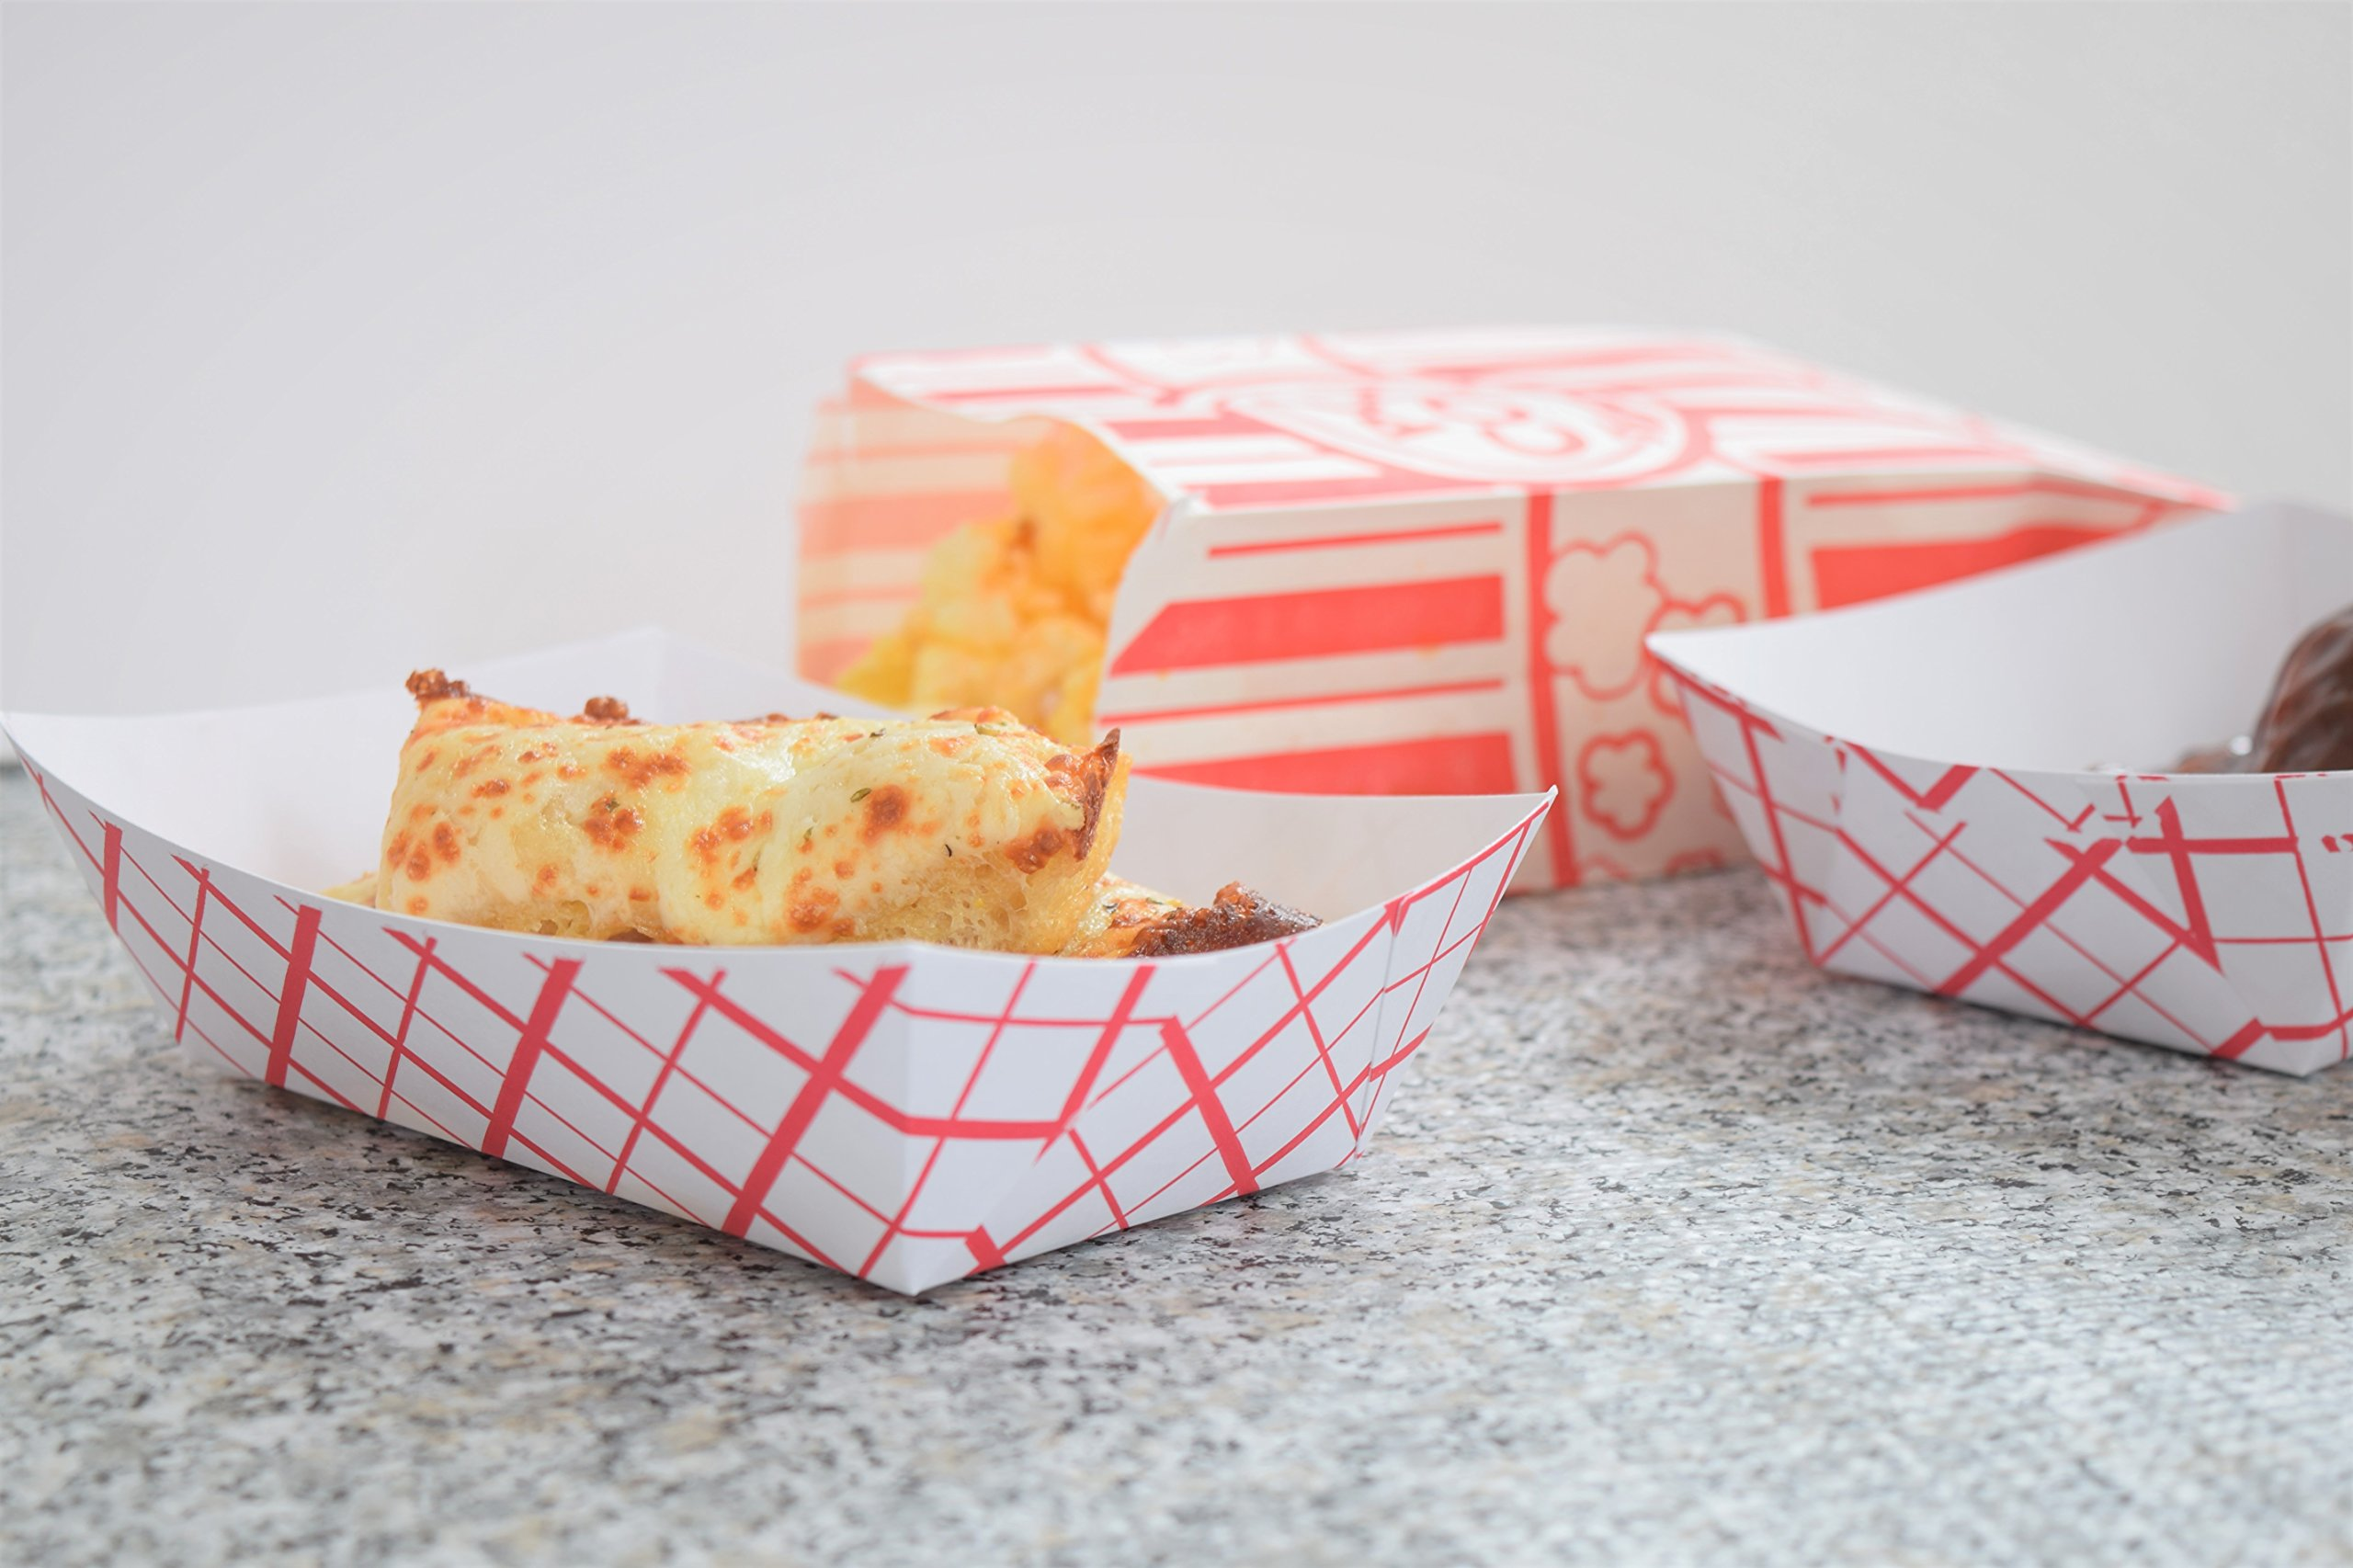 100 Red / White Food Trays (2 lb) WITH 100 Popcorn Bags (1 oz)